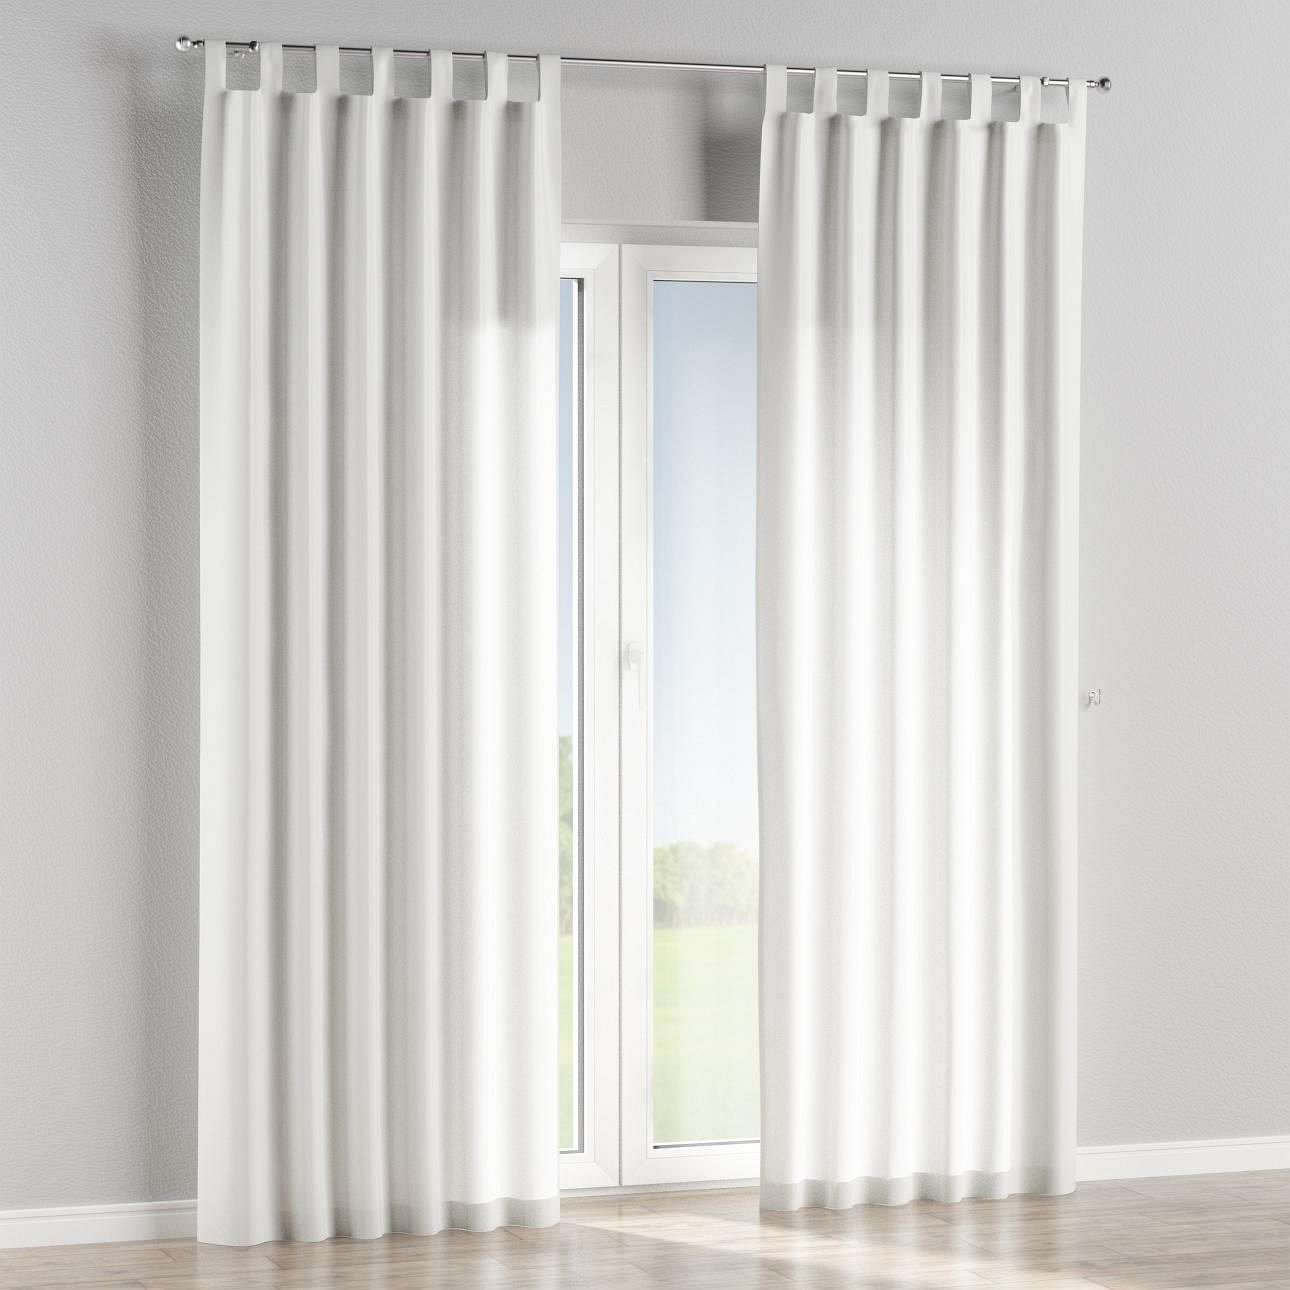 Tab top lined curtains in collection Norge, fabric: 140-92